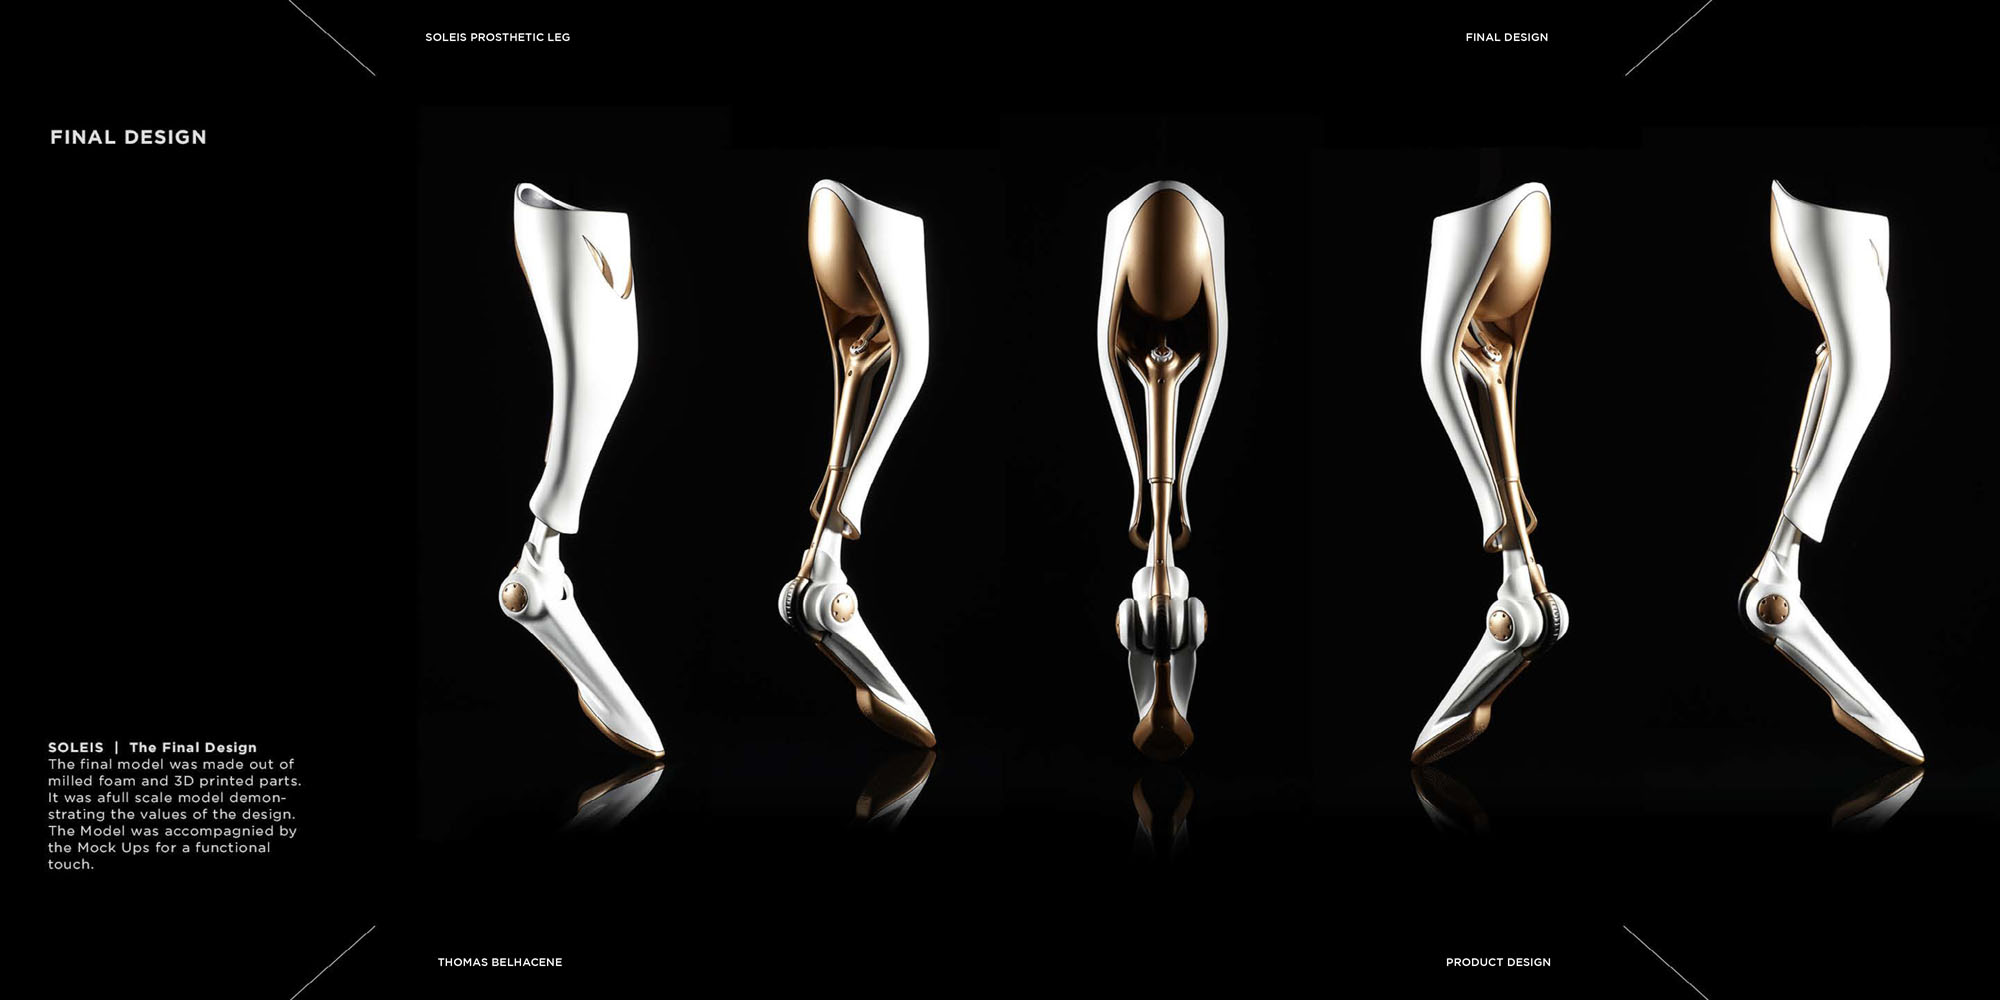 Soleis Prosthetic Leg Concept By Thomas Belhacene Tuvie